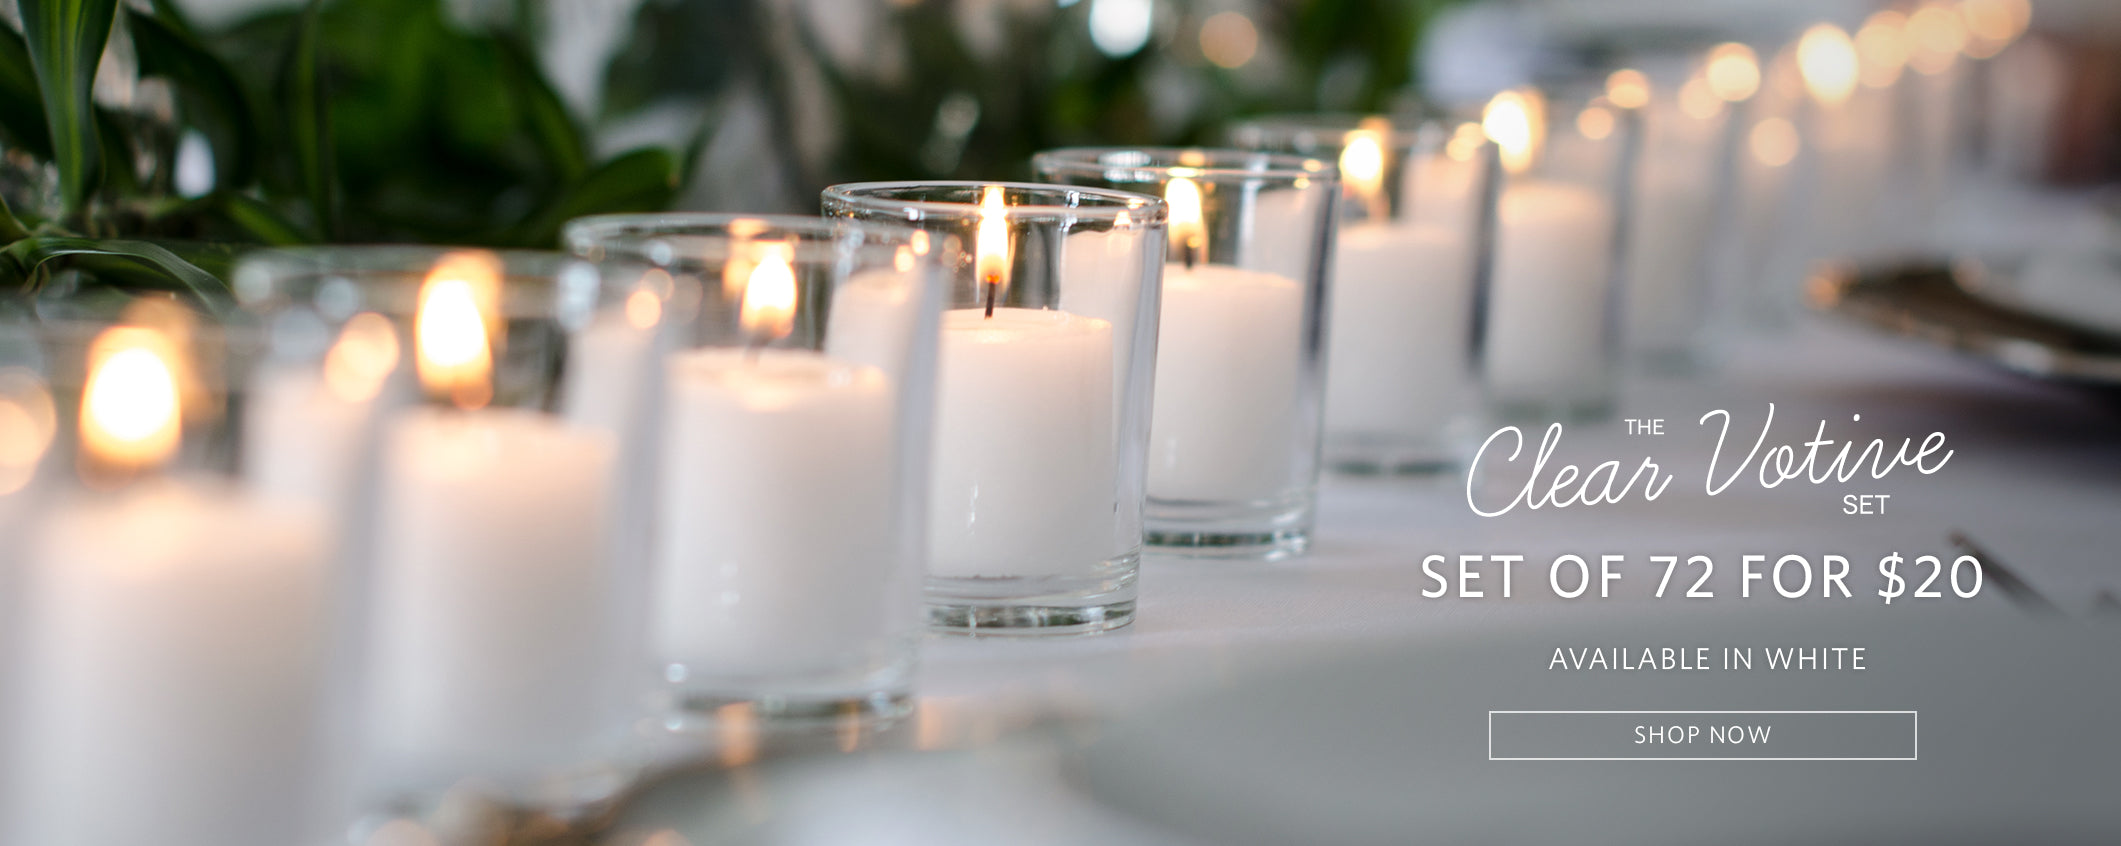 The Clear Votive Set. Set of 72 for $20. Available in white. Shop Now.